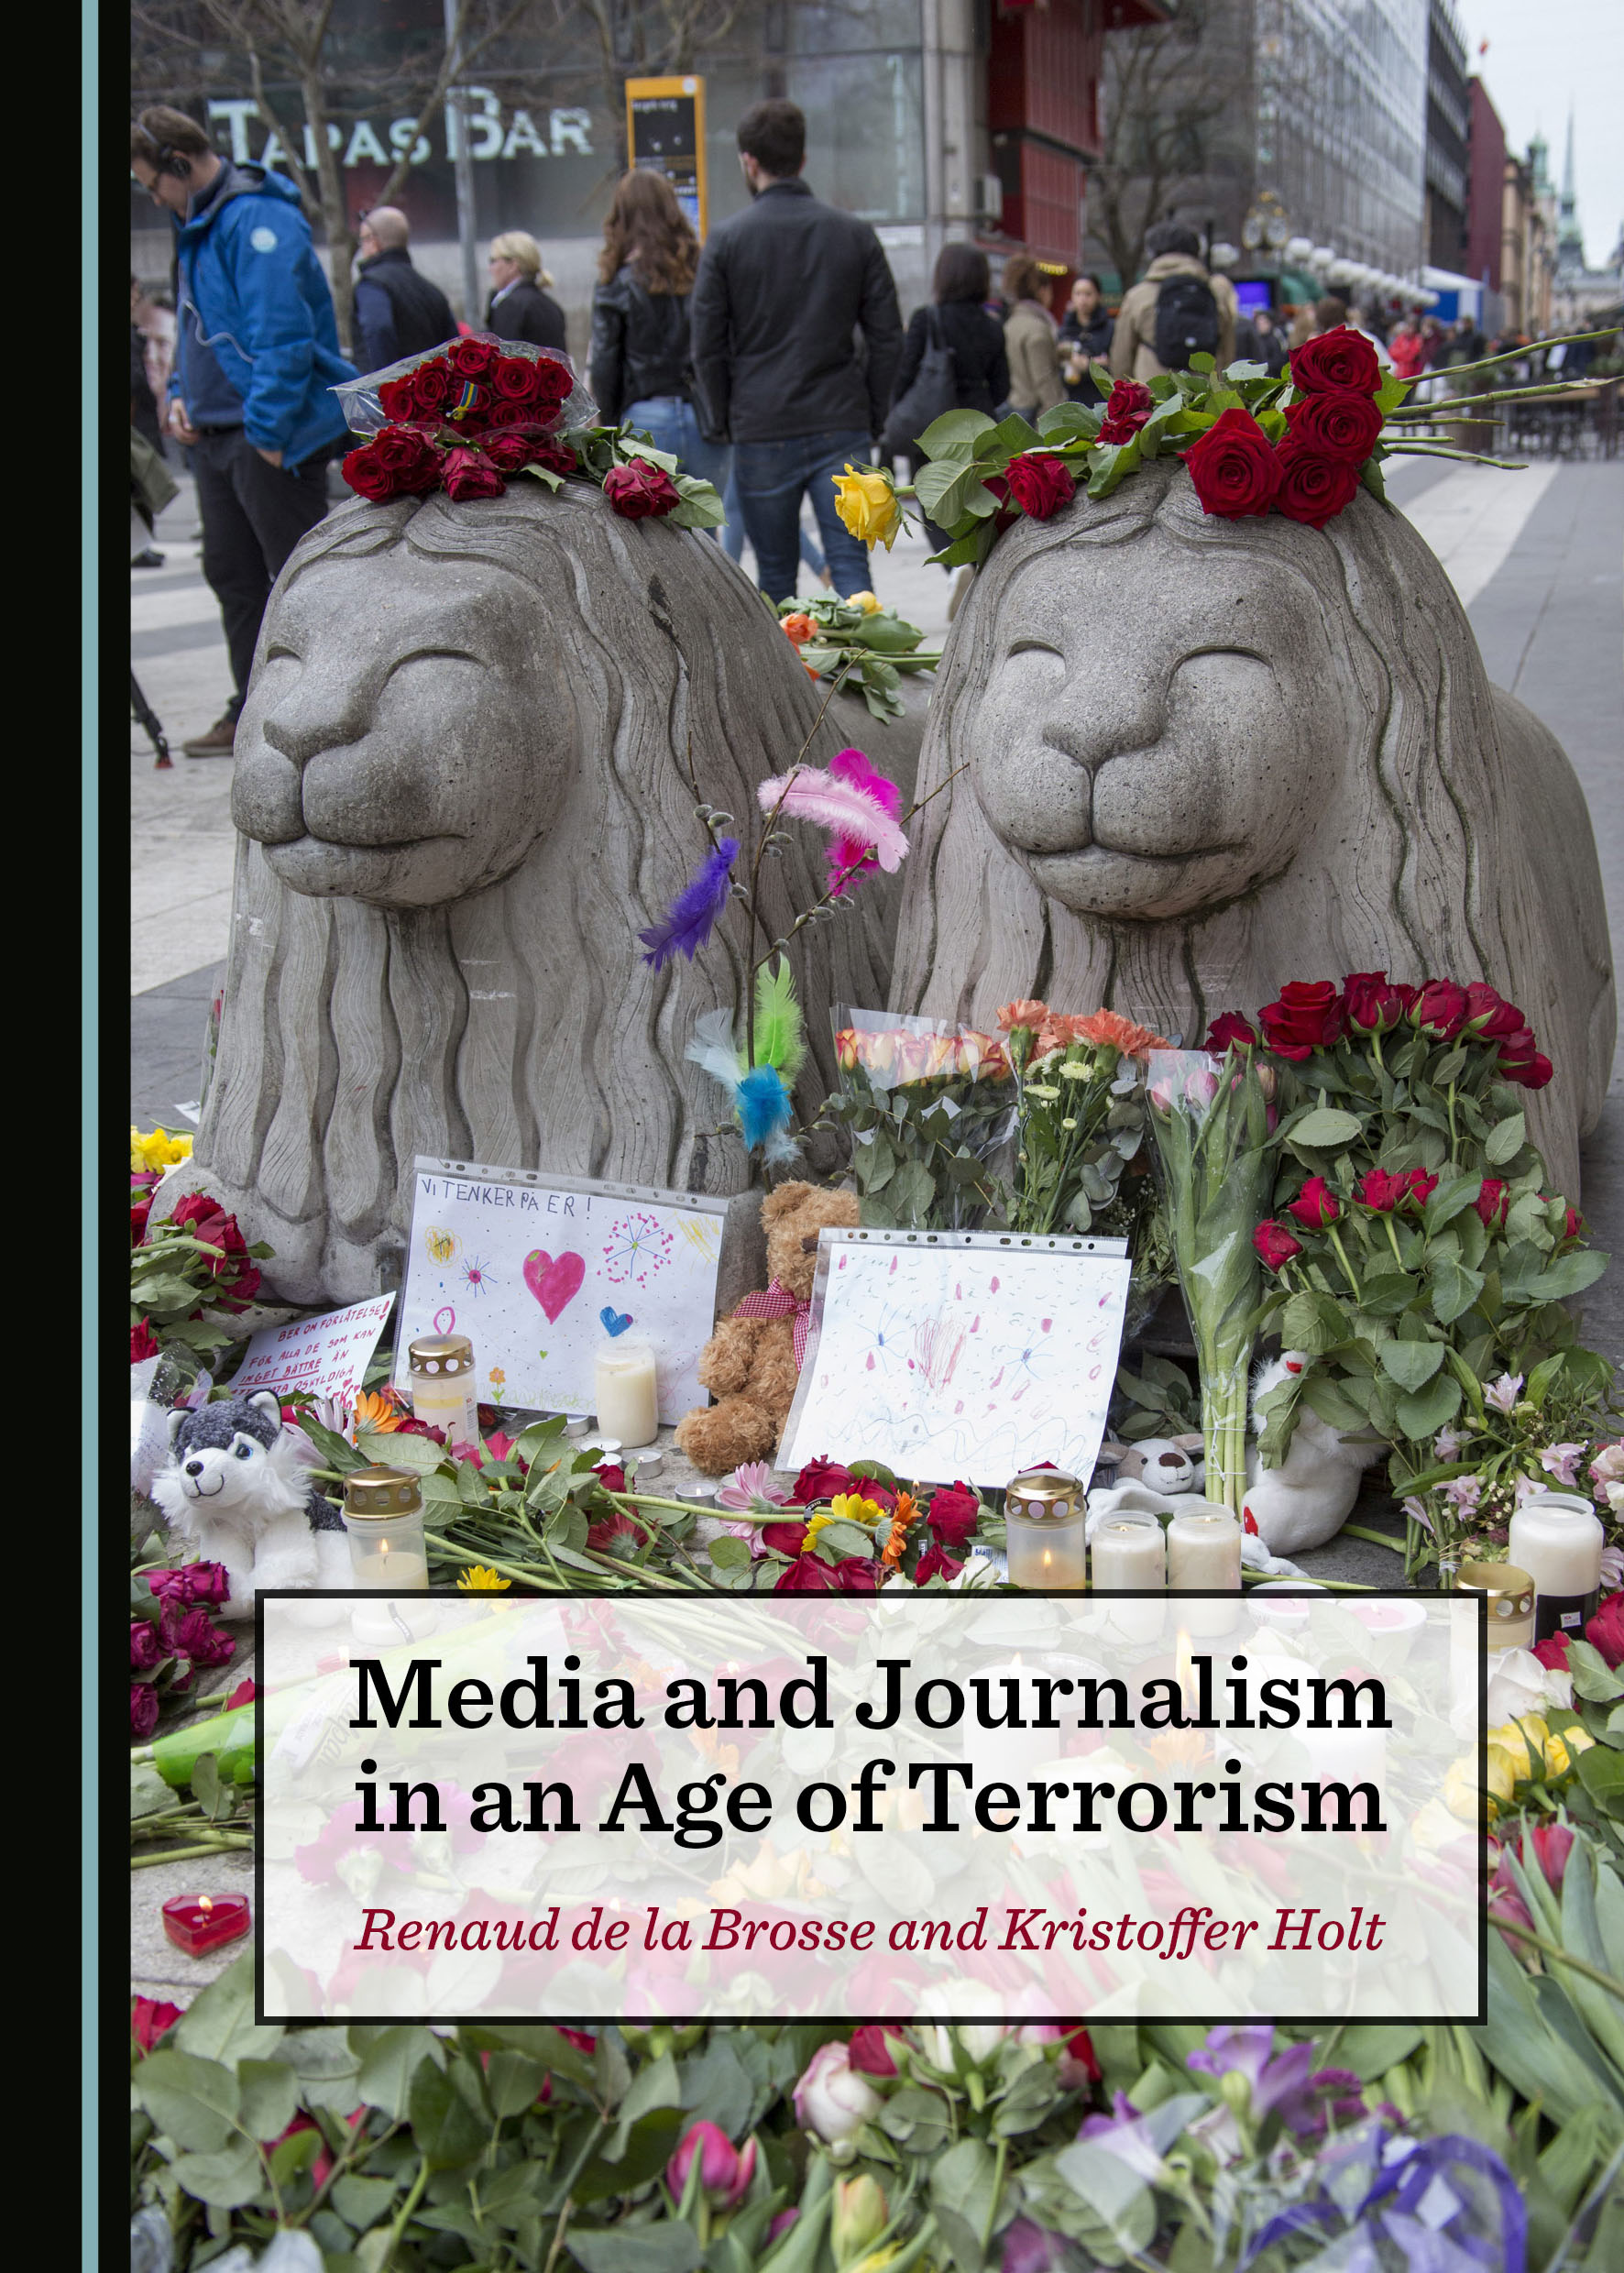 Media and Journalism in an Age of Terrorism